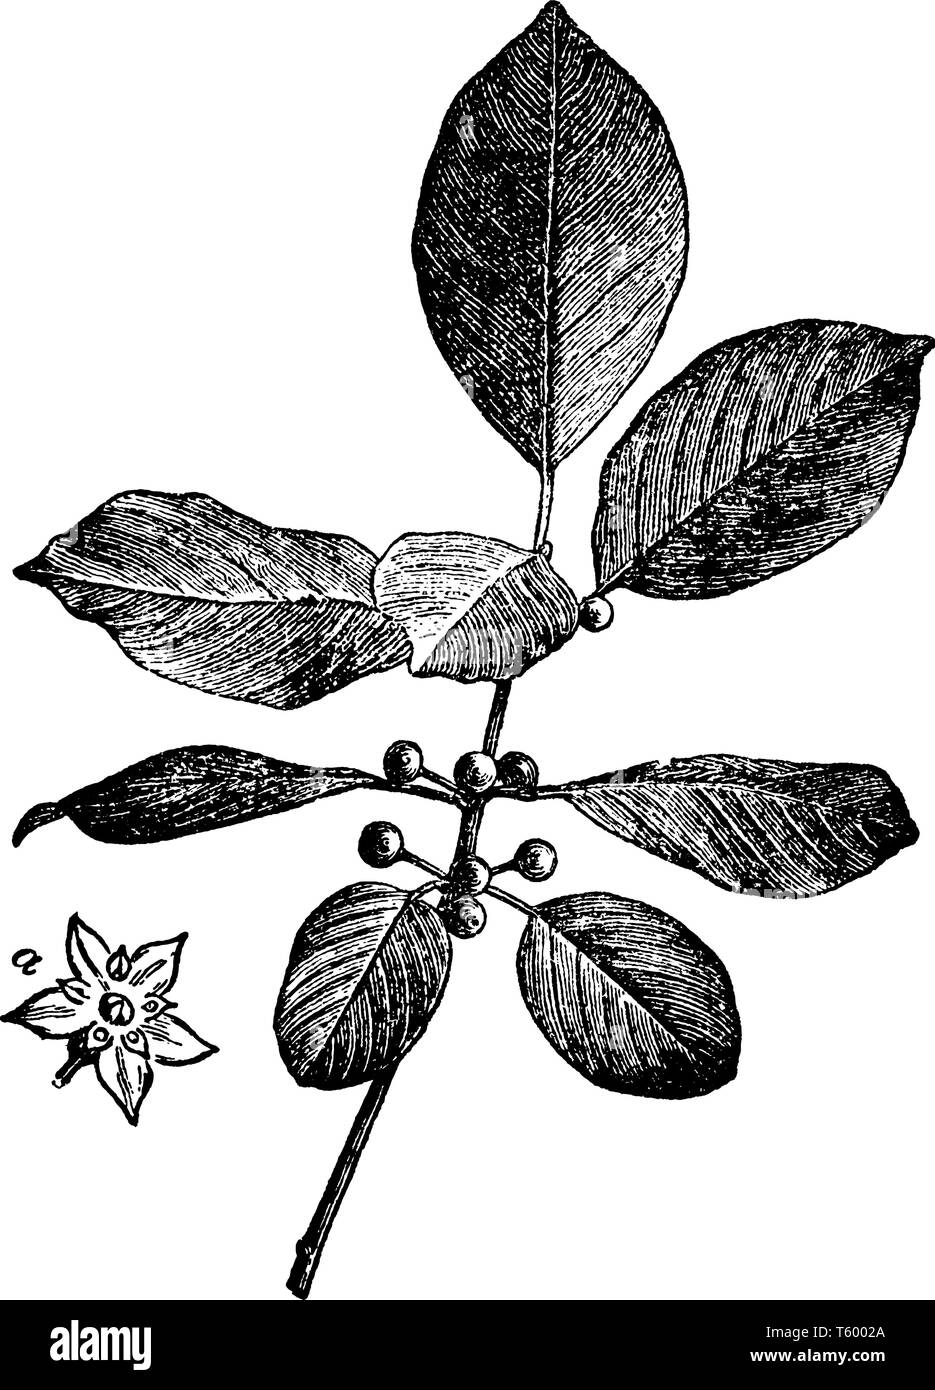 Alder Buckthorn is a fast-growing bushy deciduous shrub. The leaves are narrow, deep green and slightly hairy, vintage line drawing or engraving illus - Stock Image